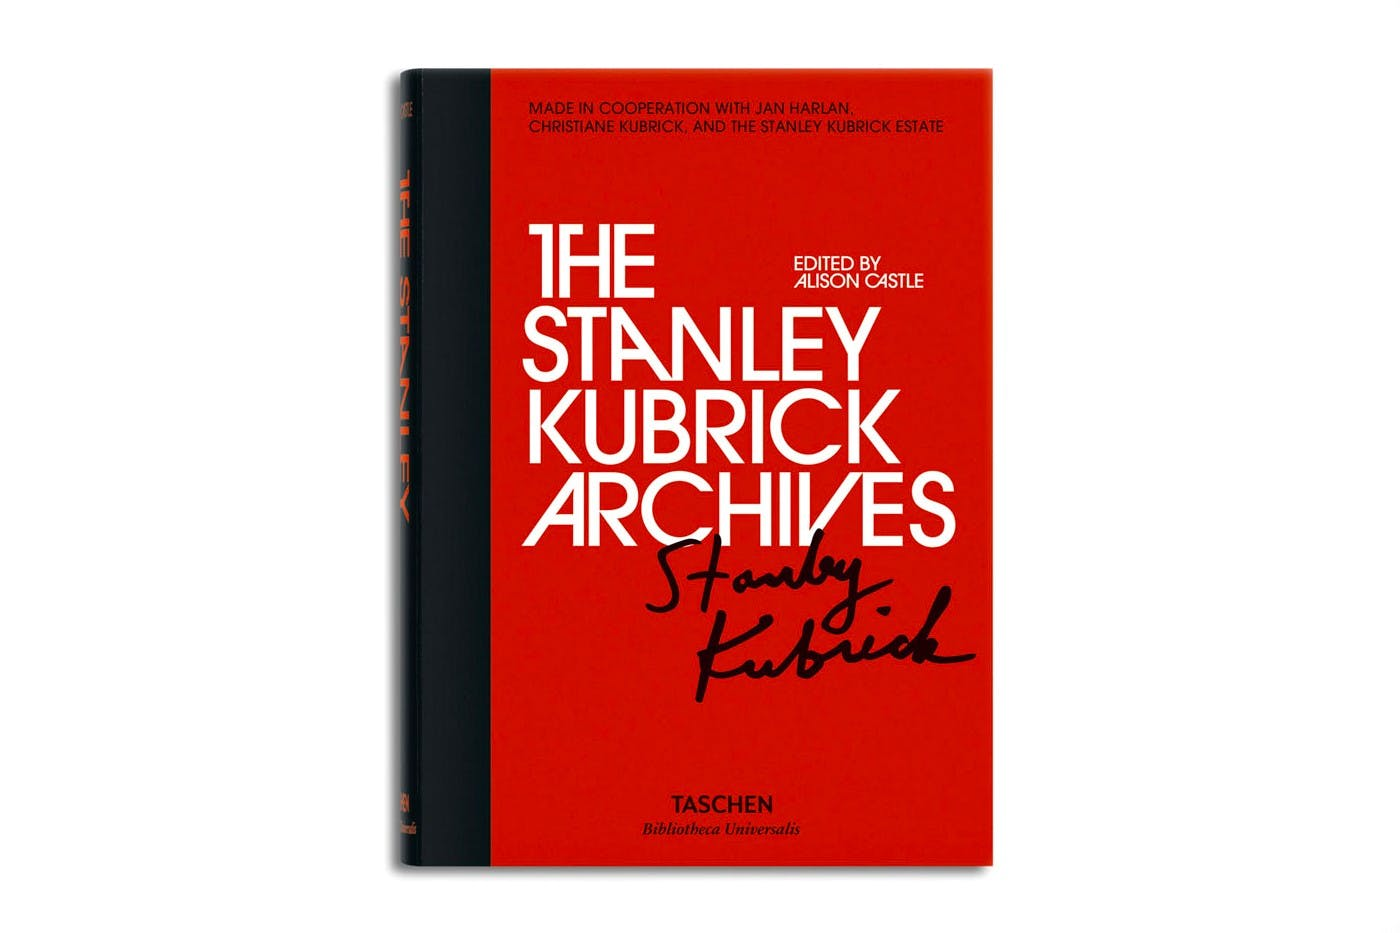 THE STANLEY KUBRICK ARCHIVES NEW TASCHEN'S BOOK